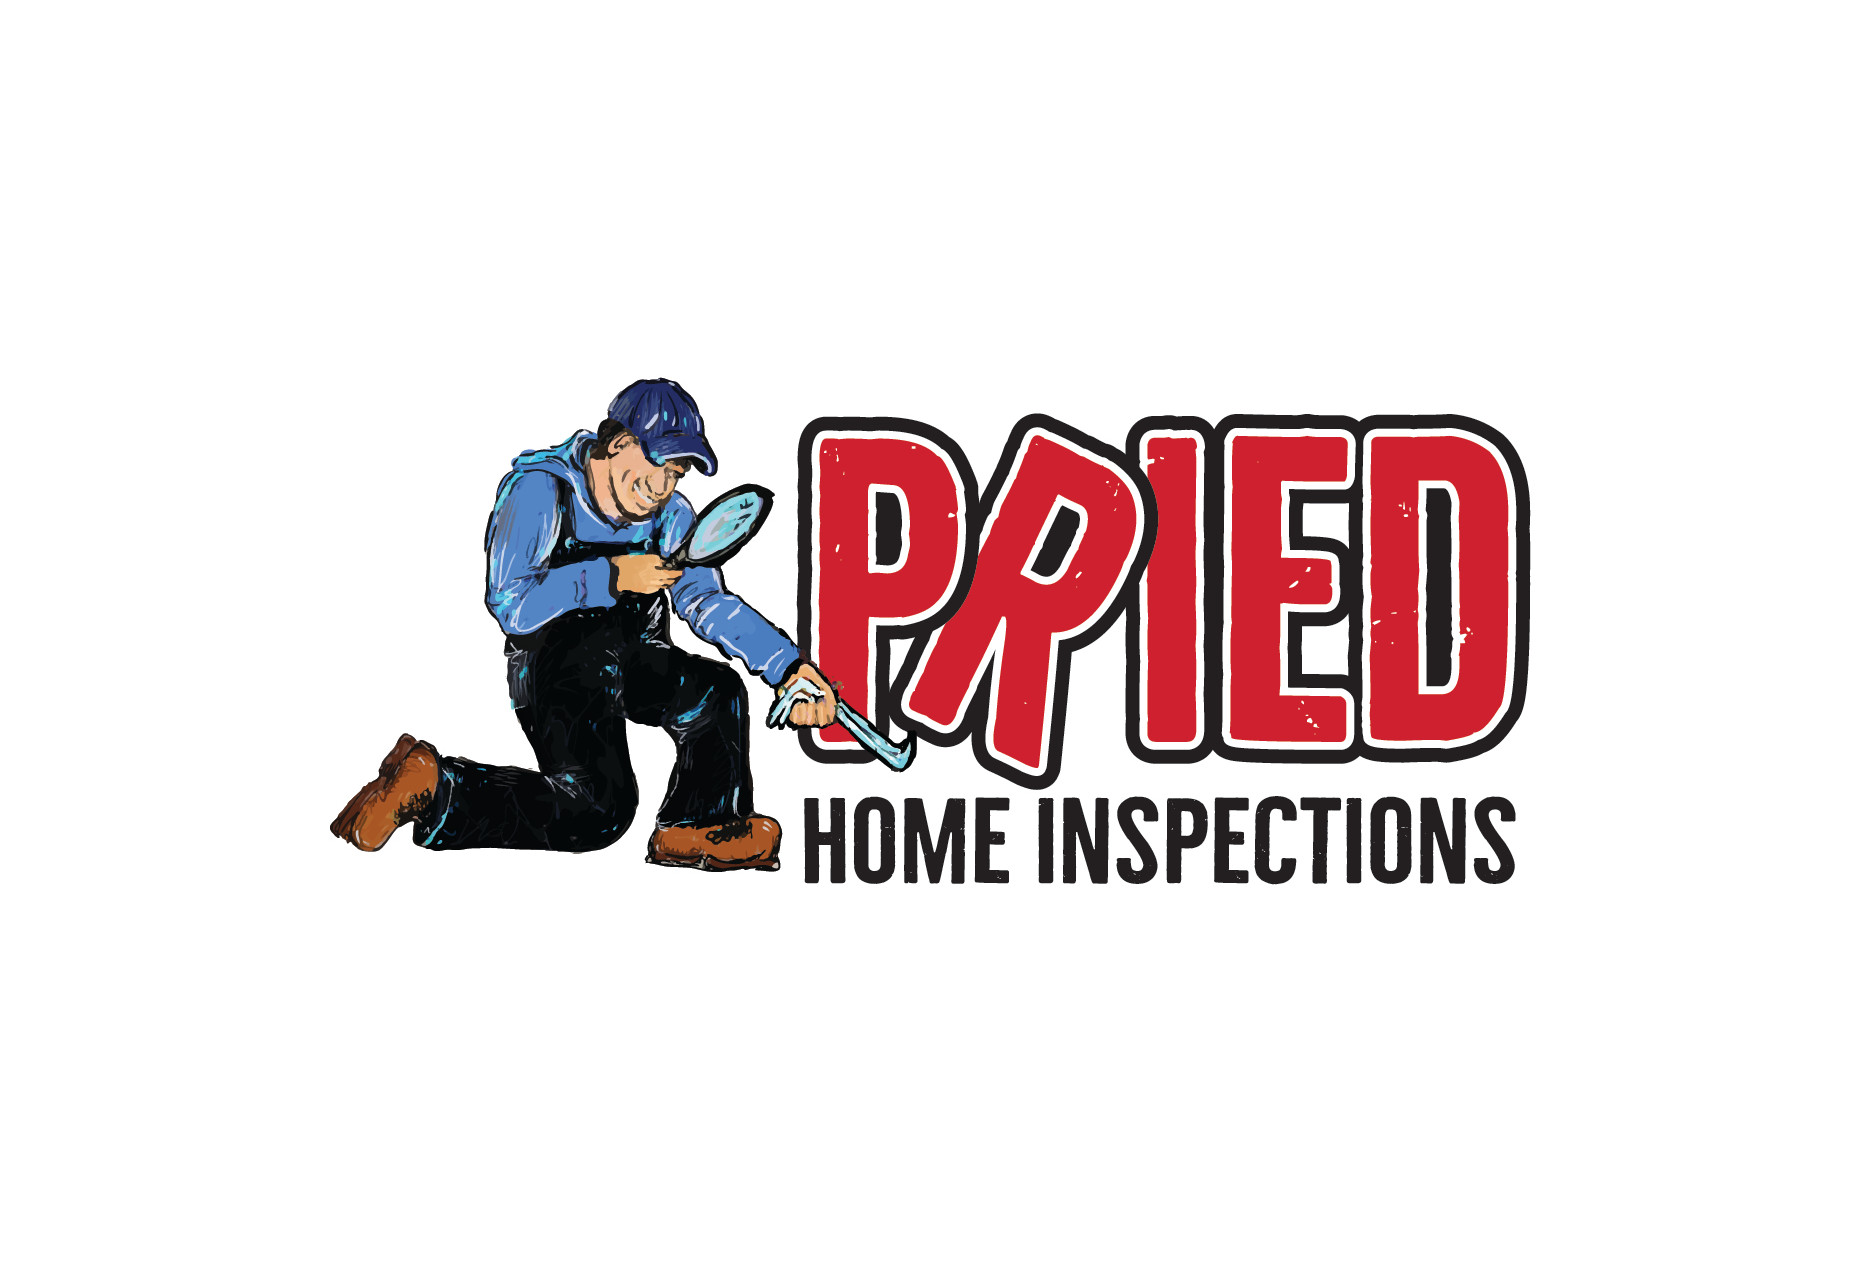 Pried Home Inspections